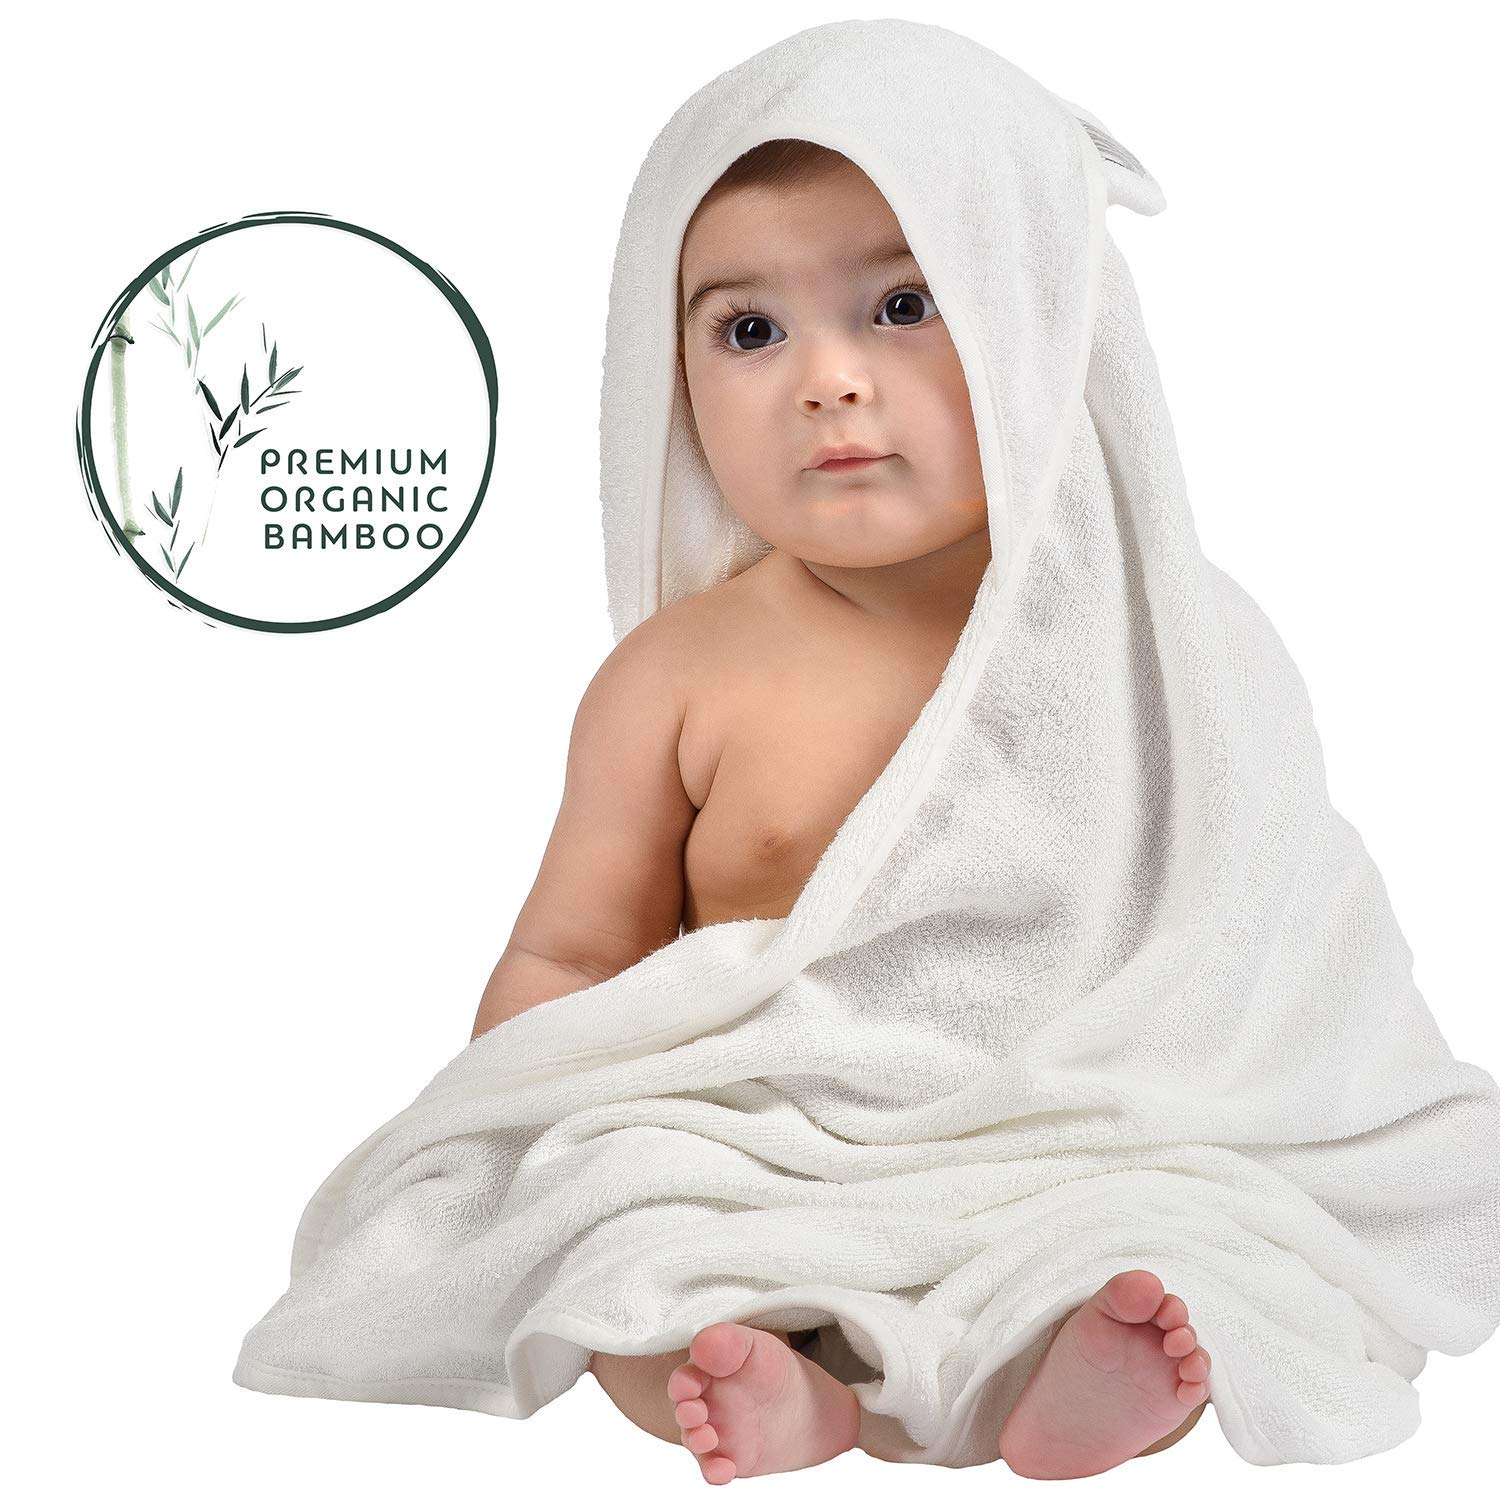 Parenting & Children London Organic Bamboo Hooded Baby Towel and Washcloth Set - Softest Unisex Bath Towel for Kids, Infants and Toddlers - Perfect for Girls and Boys (Grey)